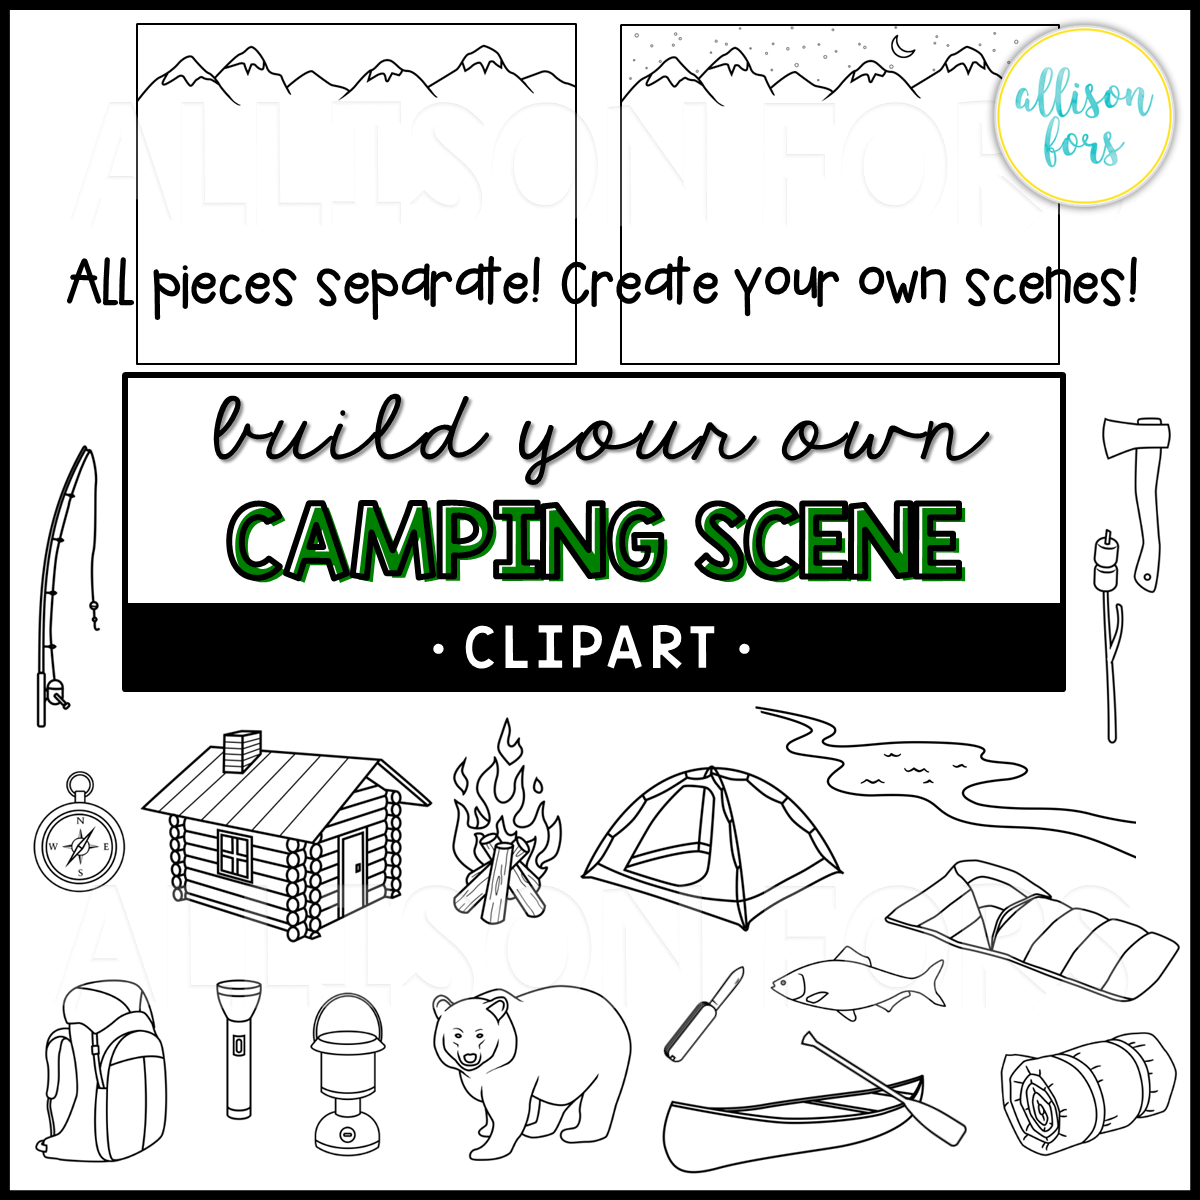 Build Your Own Camping Scene